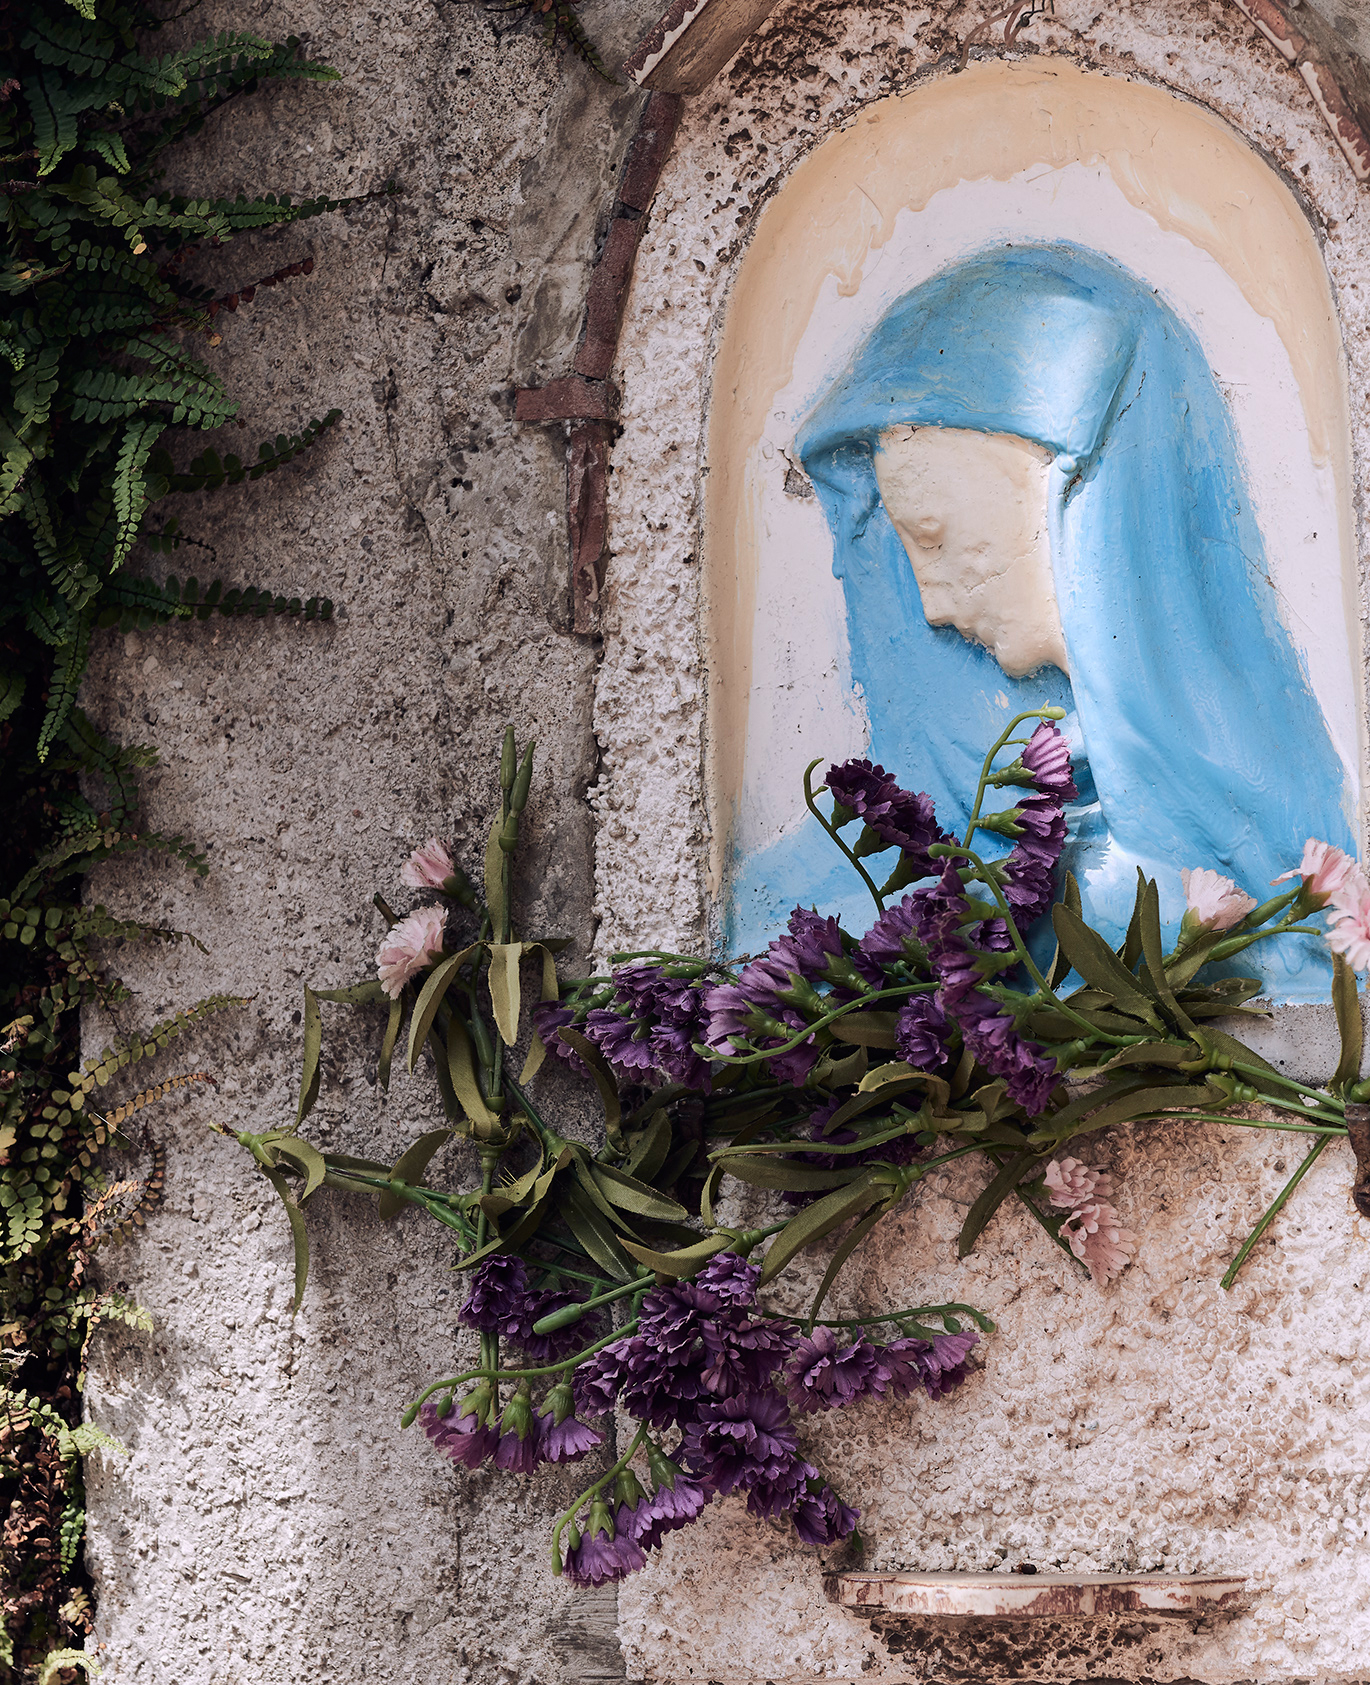 Flowers and sculpture in lake Garda Italy. Kirsty Owen photography